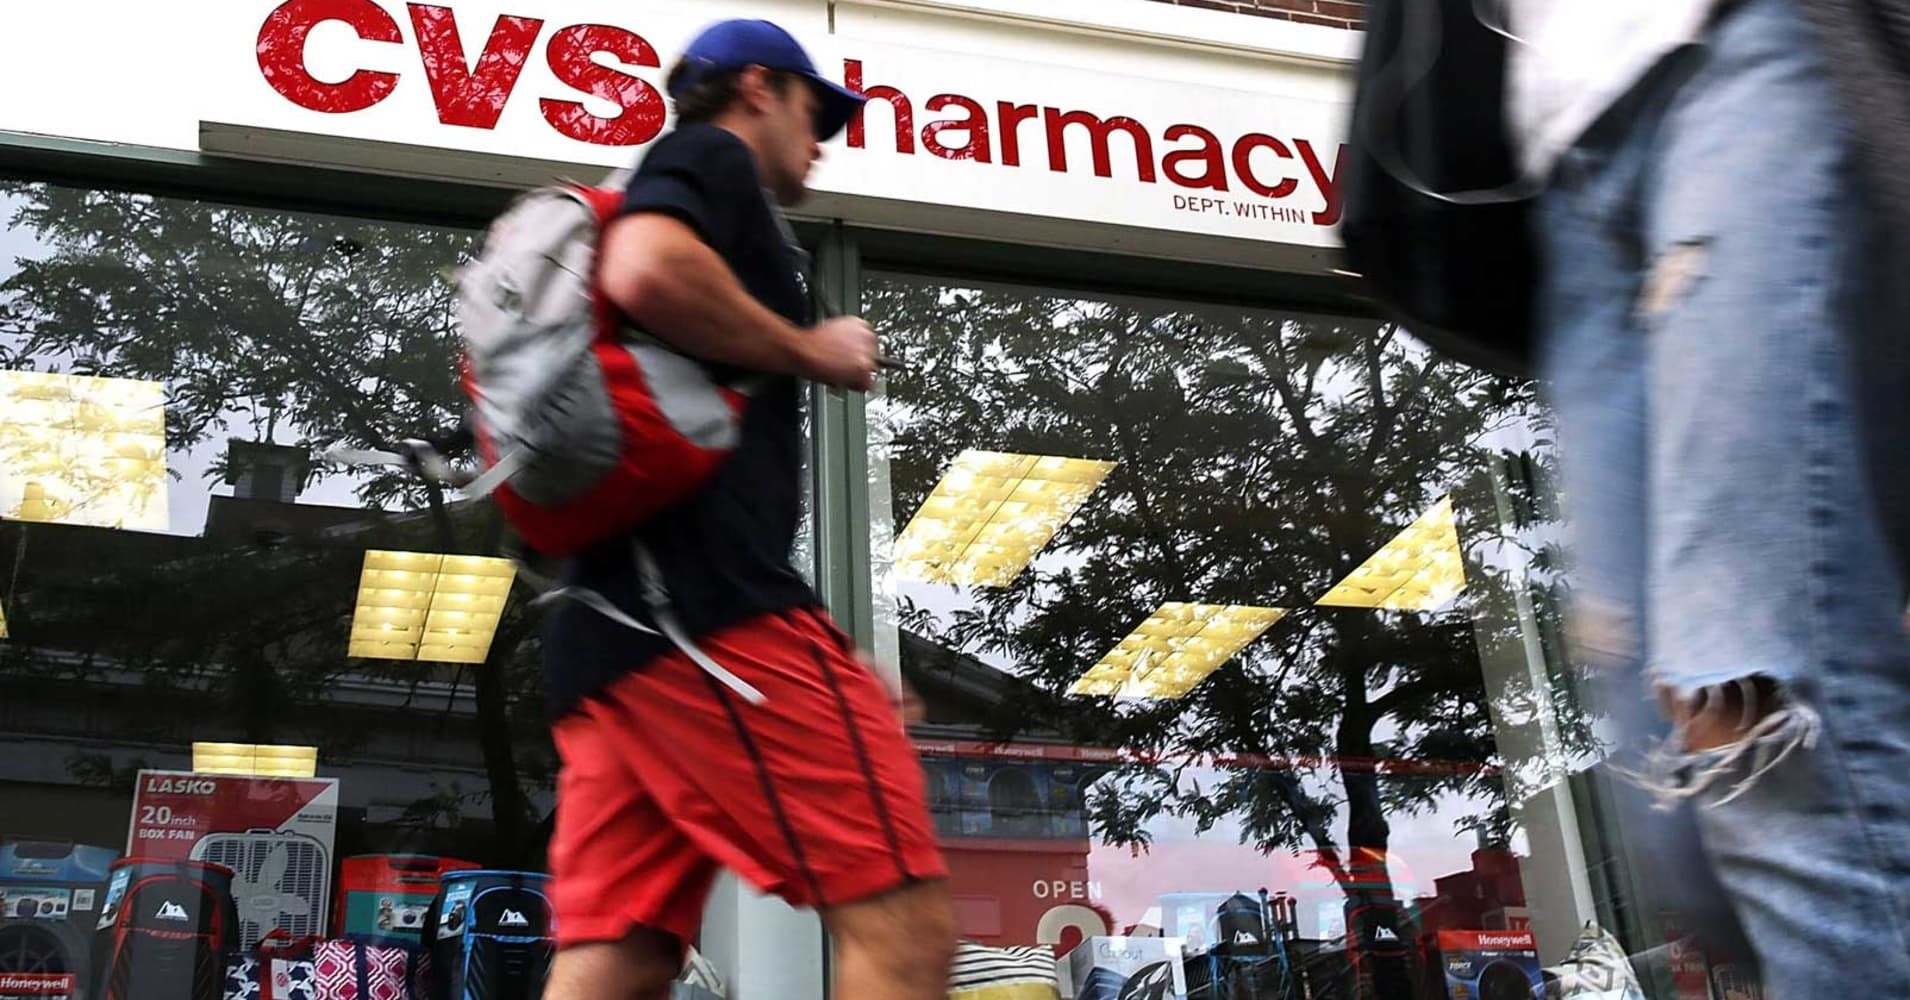 Old problems worry investors as CVS tries to head in a new direction